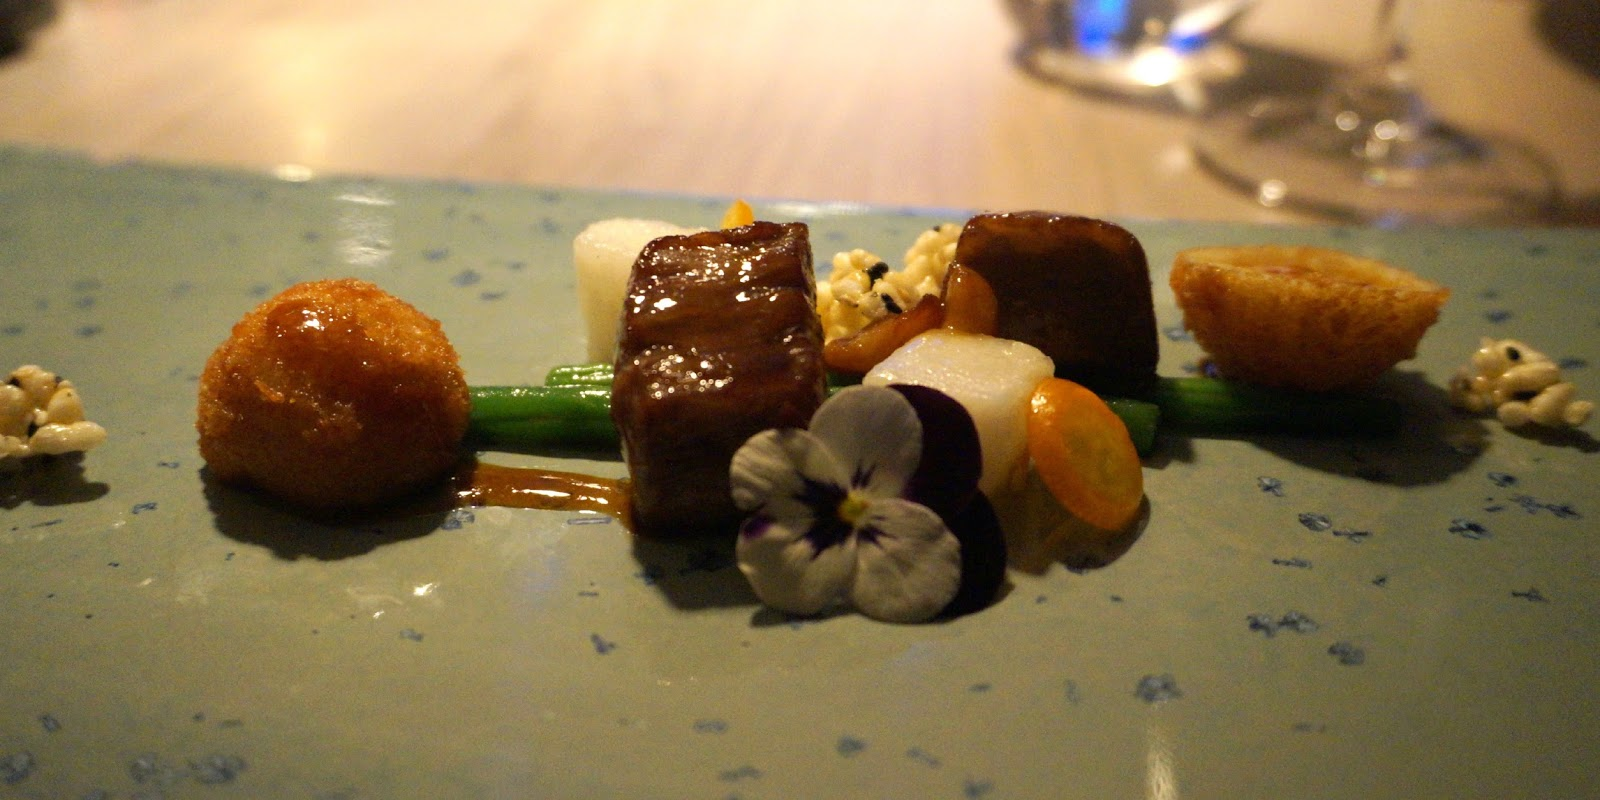 Japanese wagyu beef with potato croquettes